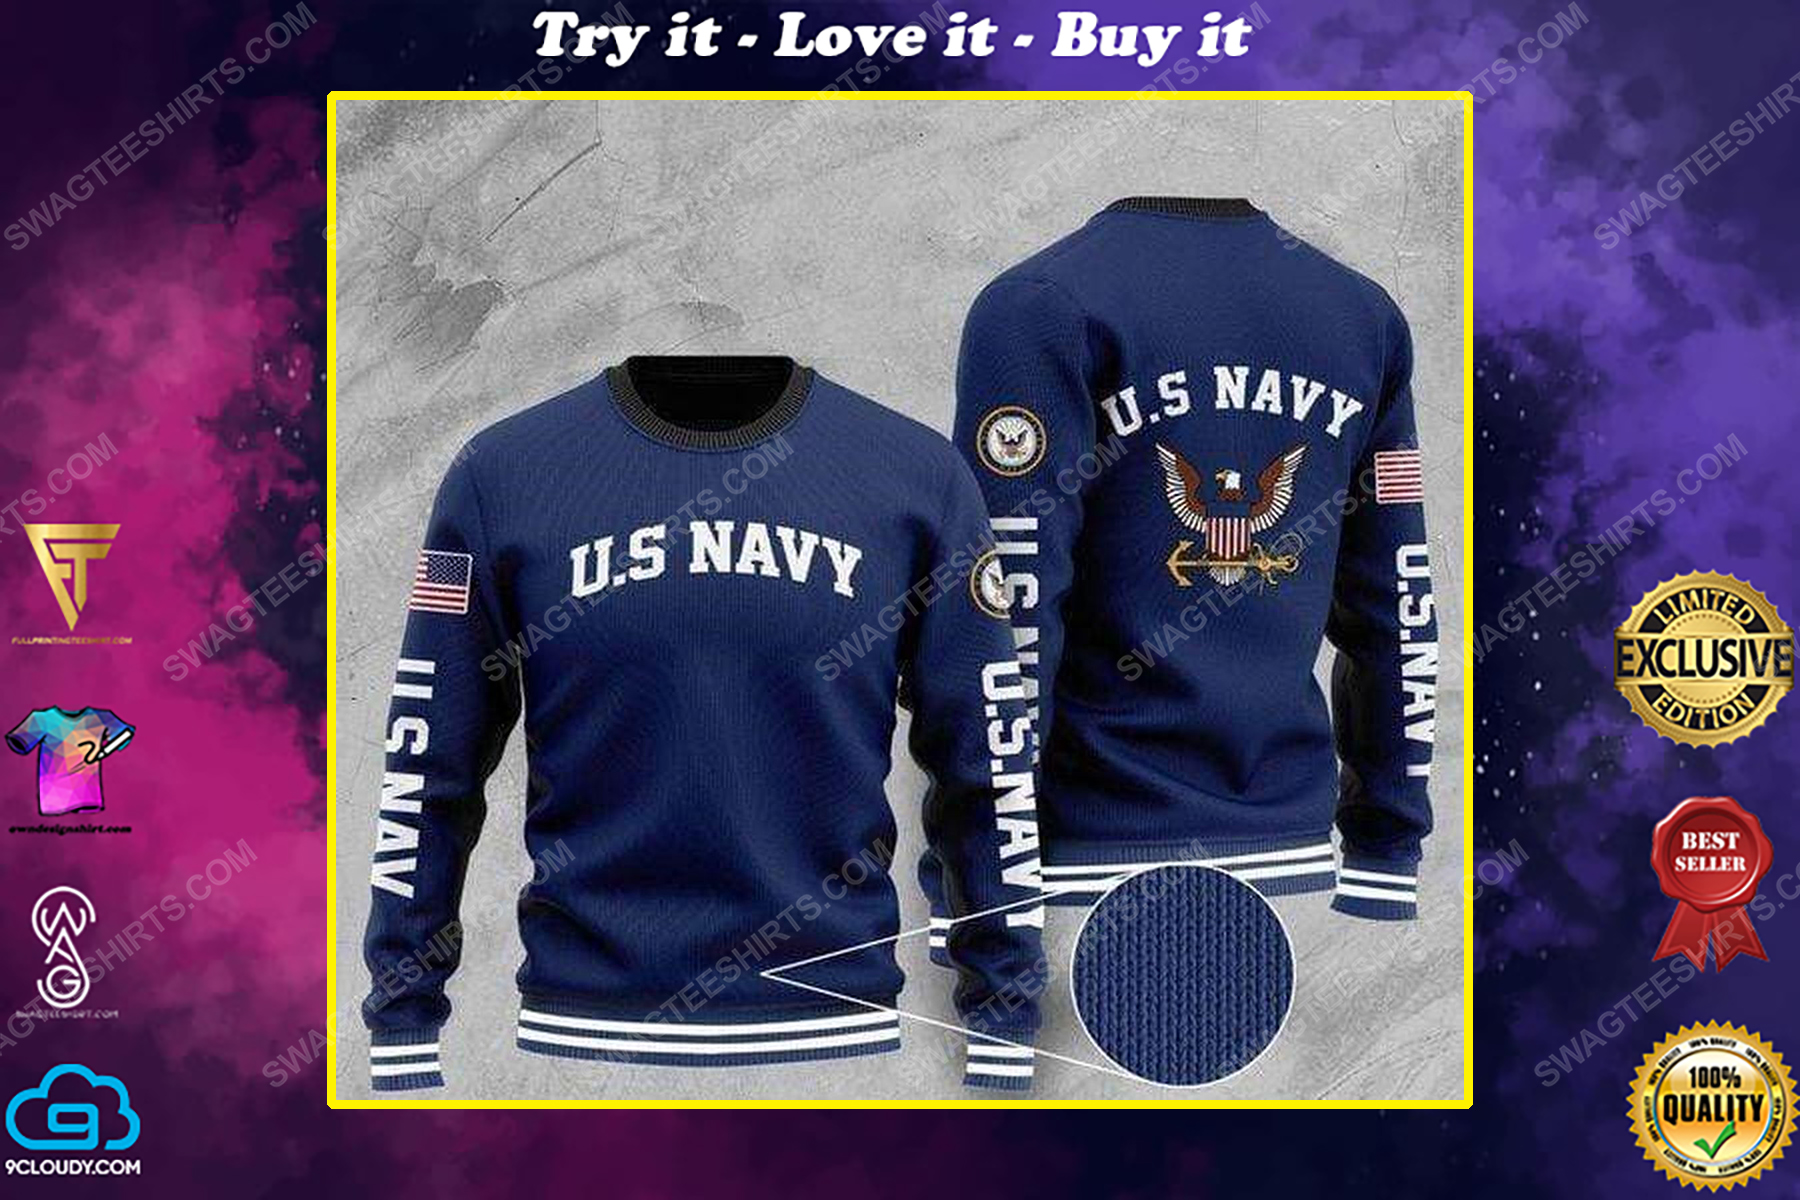 United states navy all over print ugly christmas sweater